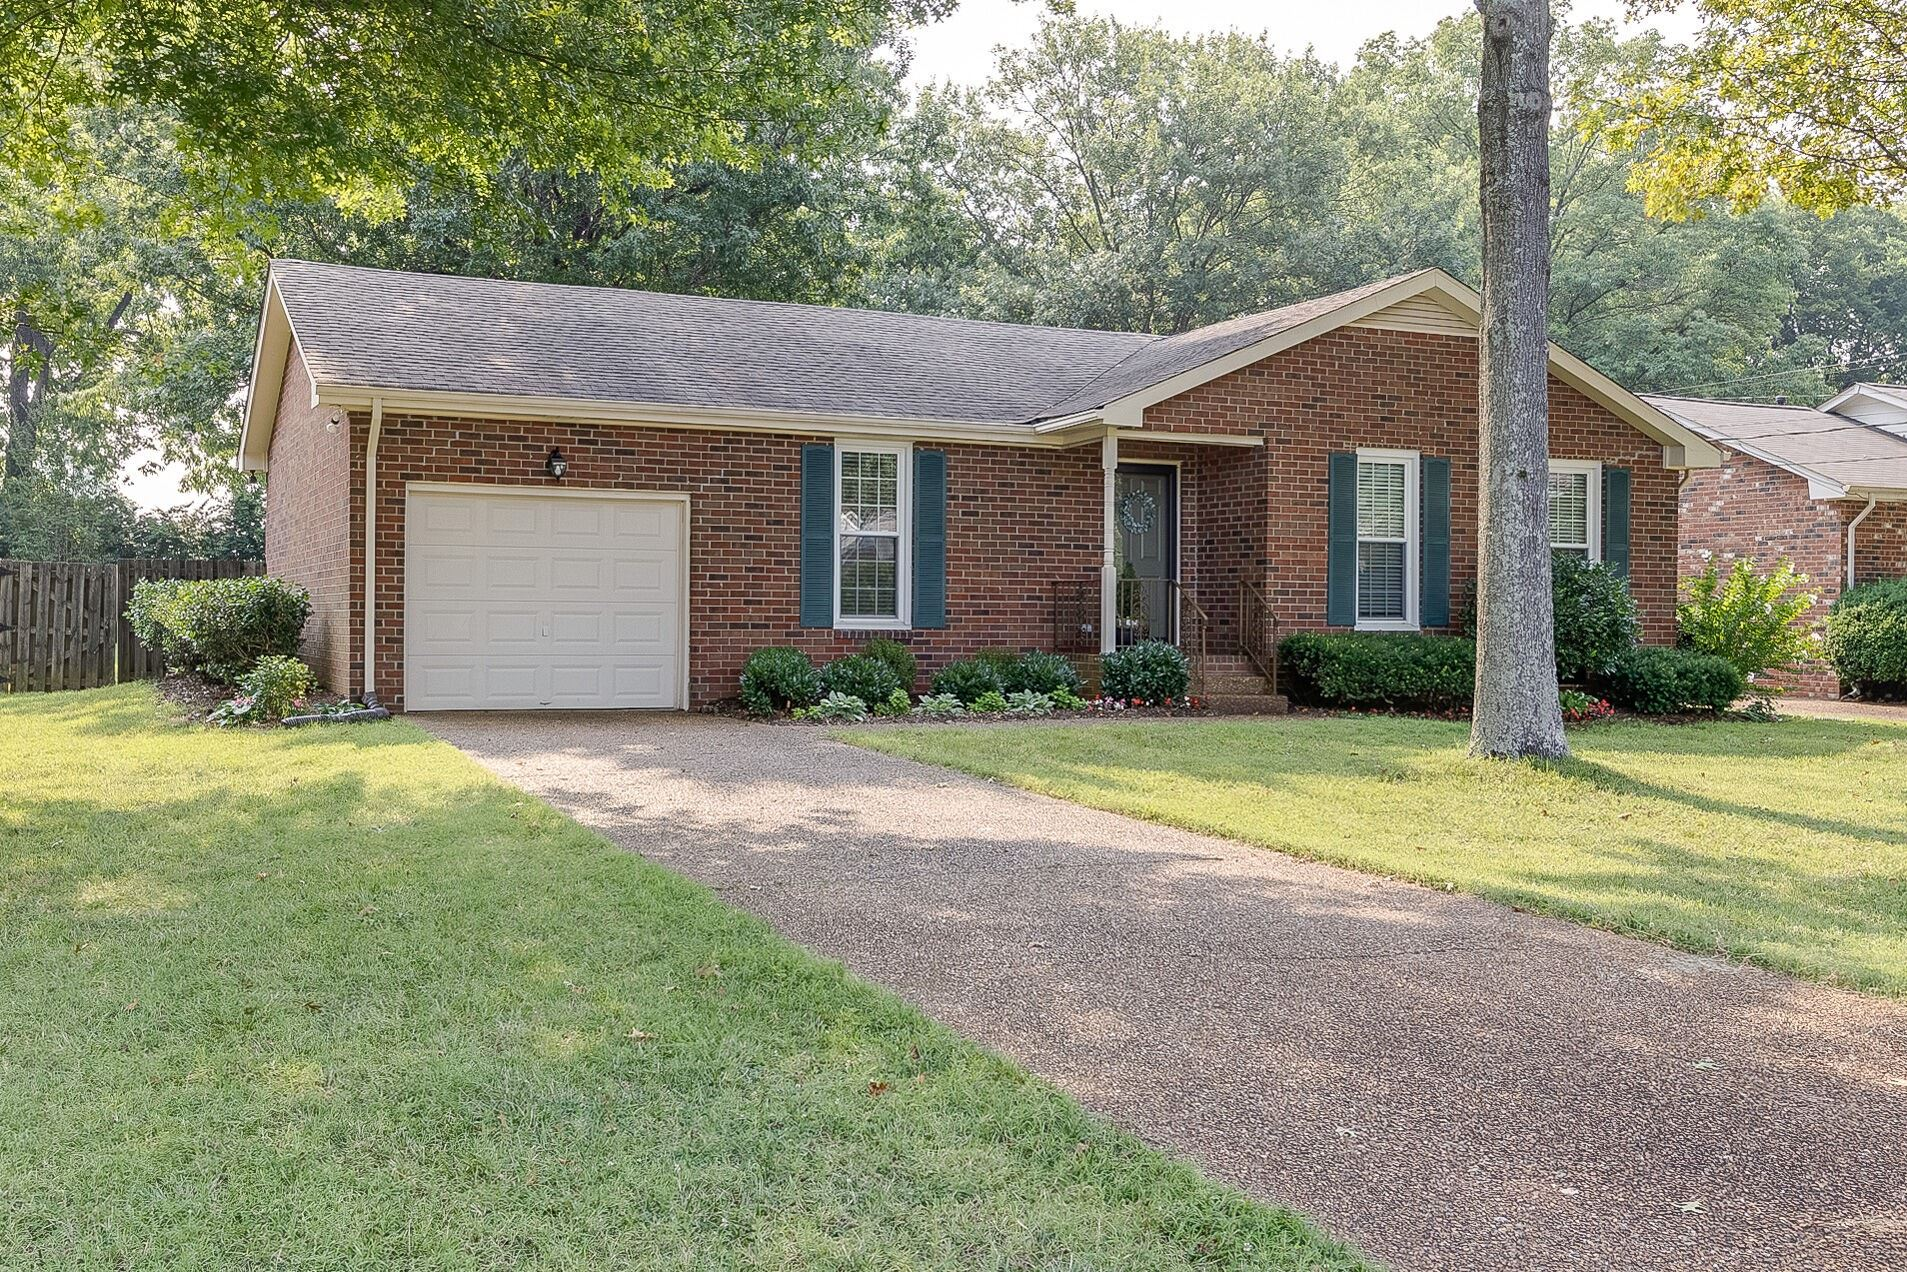 5640 Oakes Dr, Brentwood, TN 37027 - MLS#: 2275989